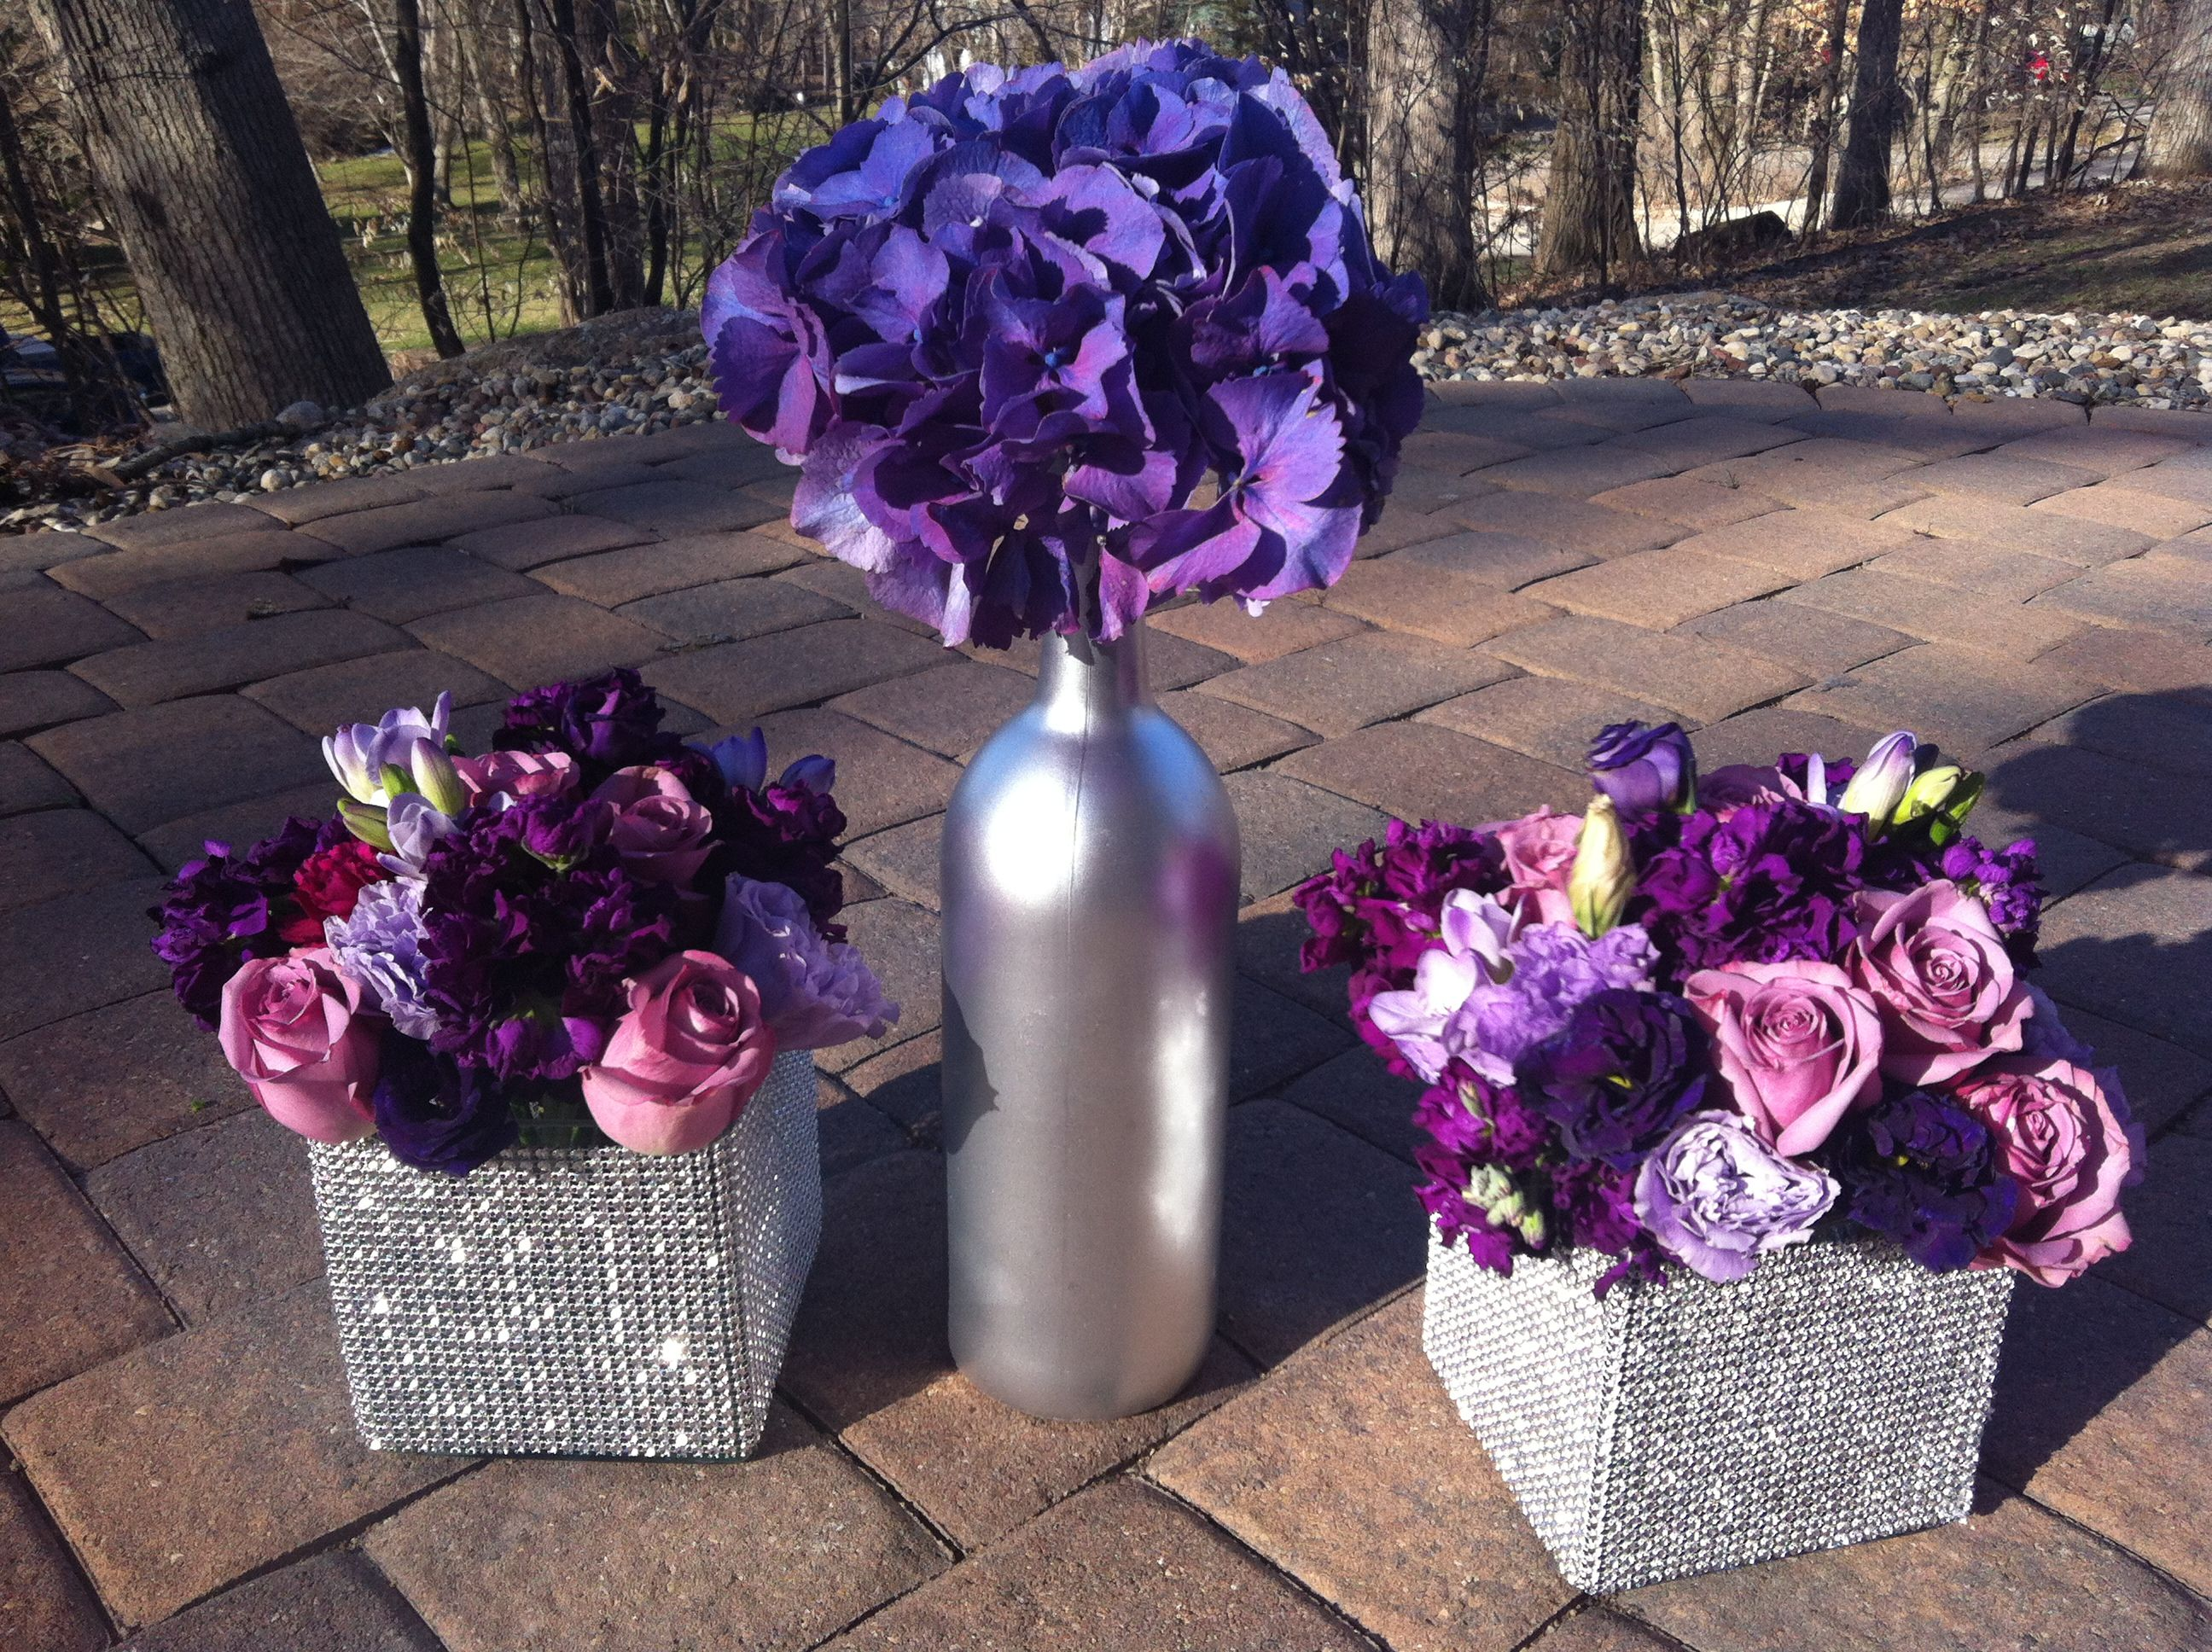 Purple Birthday Centerpiece Ideas : Purple flowers centerpieces silver wine bottles